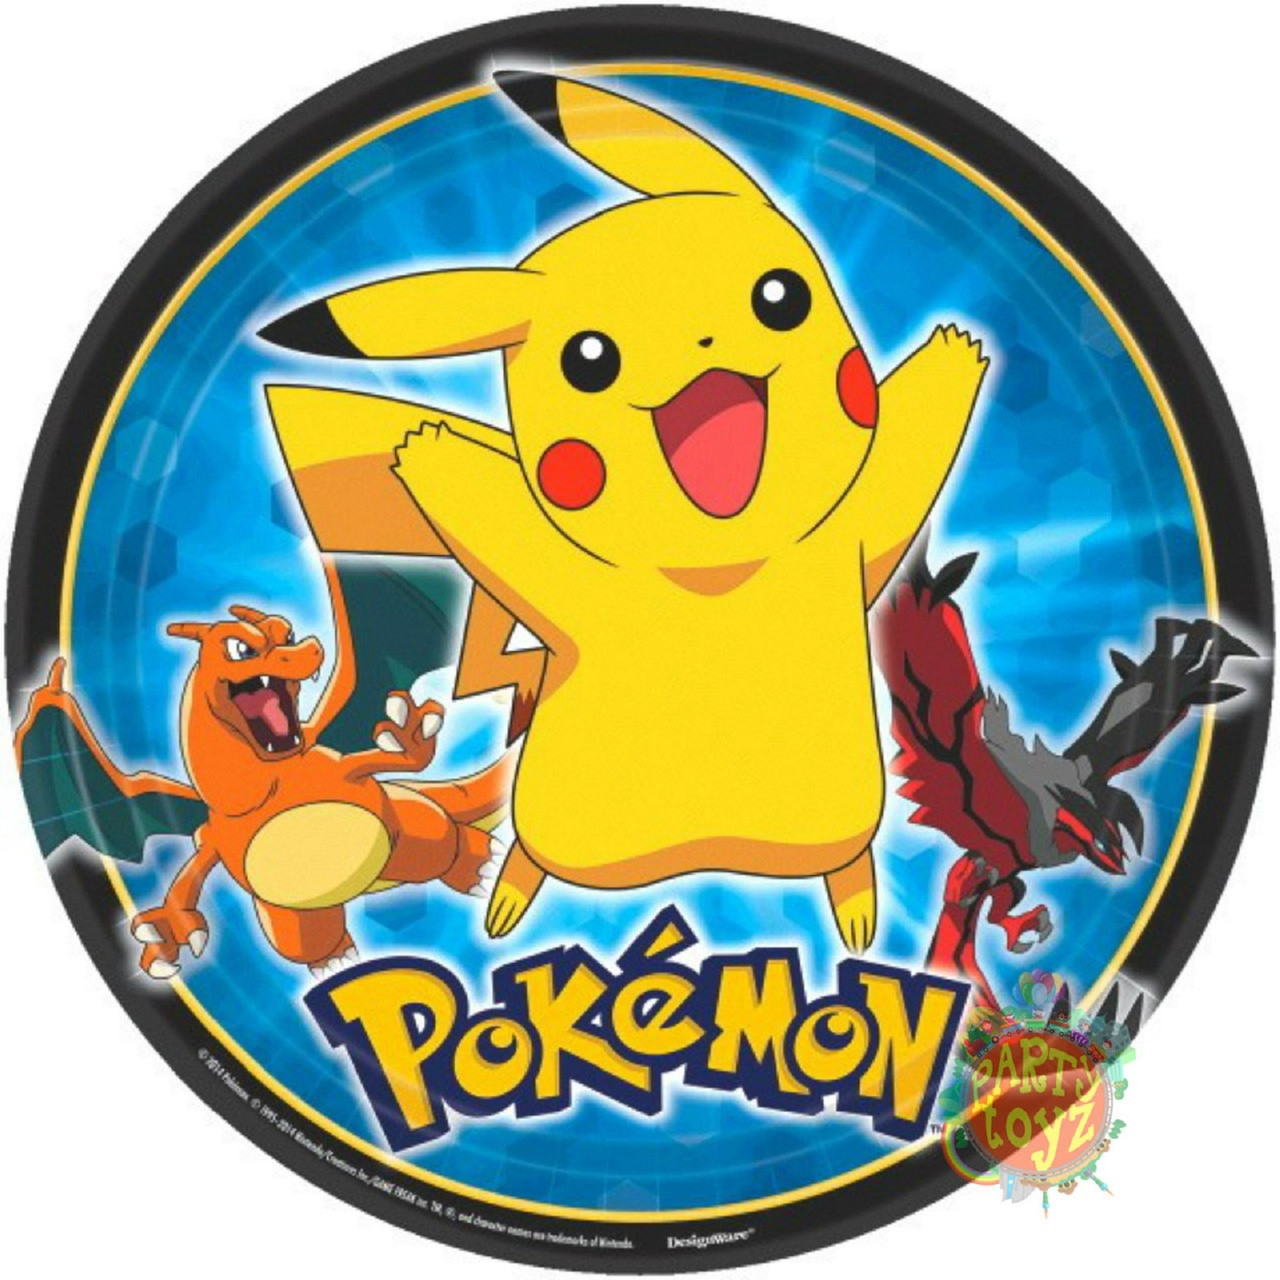 Pokemon Large Lunch Plates - Pikachu and Friends